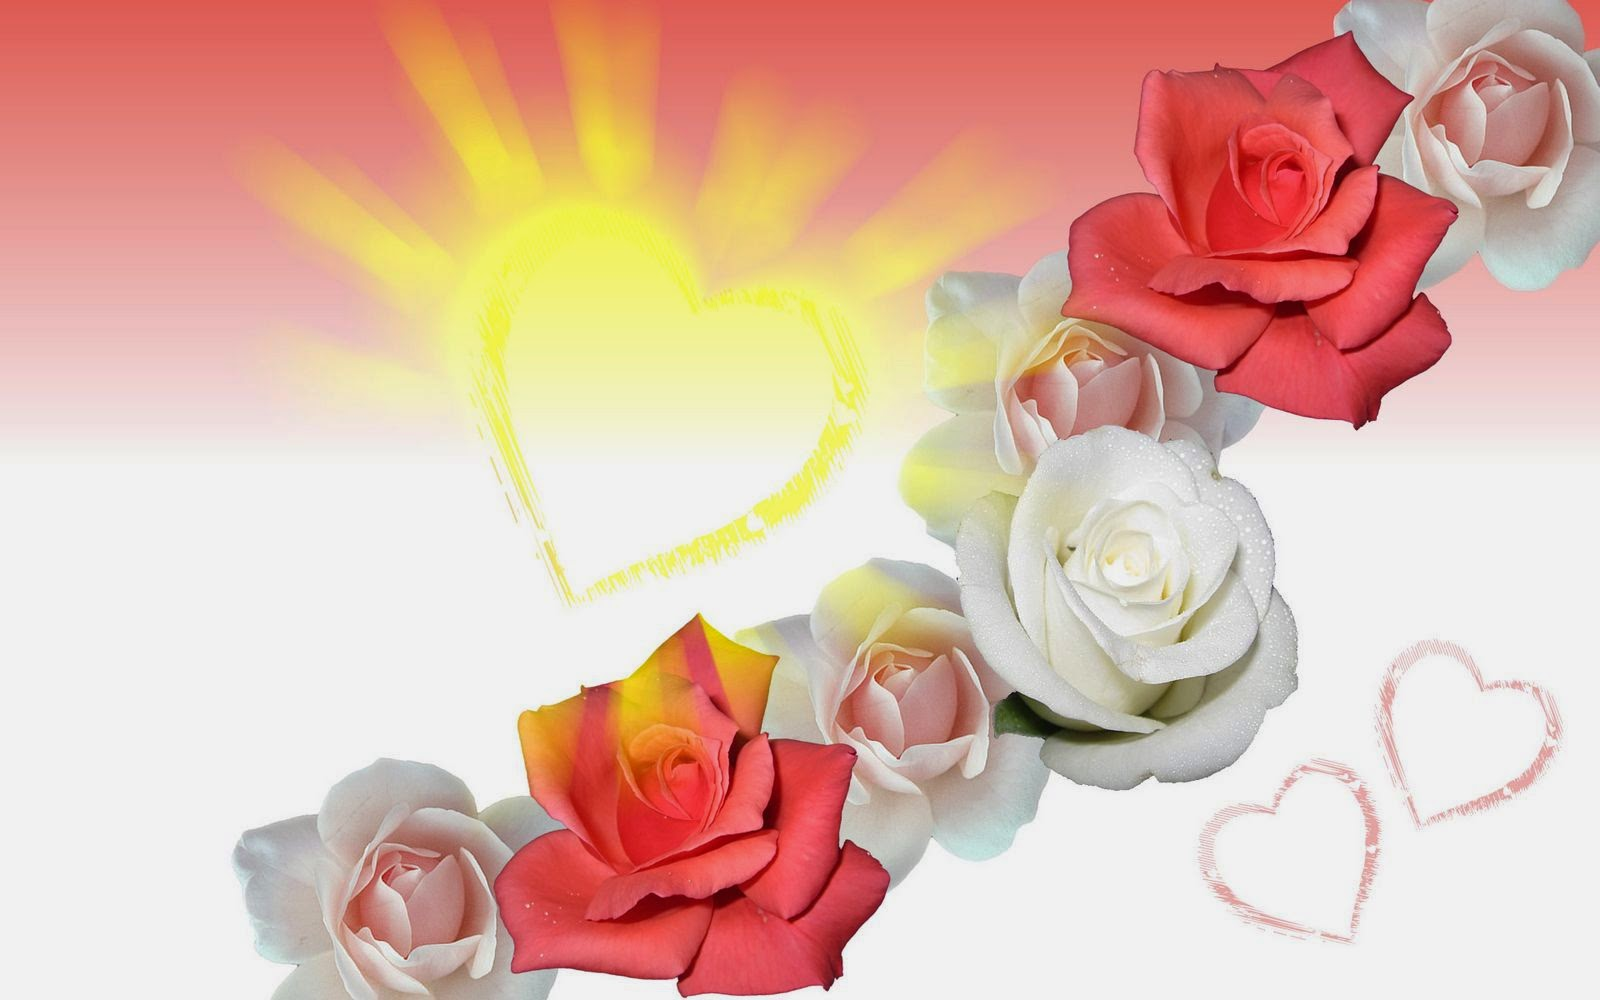 flower-rose-wallpaper-heart-of-god